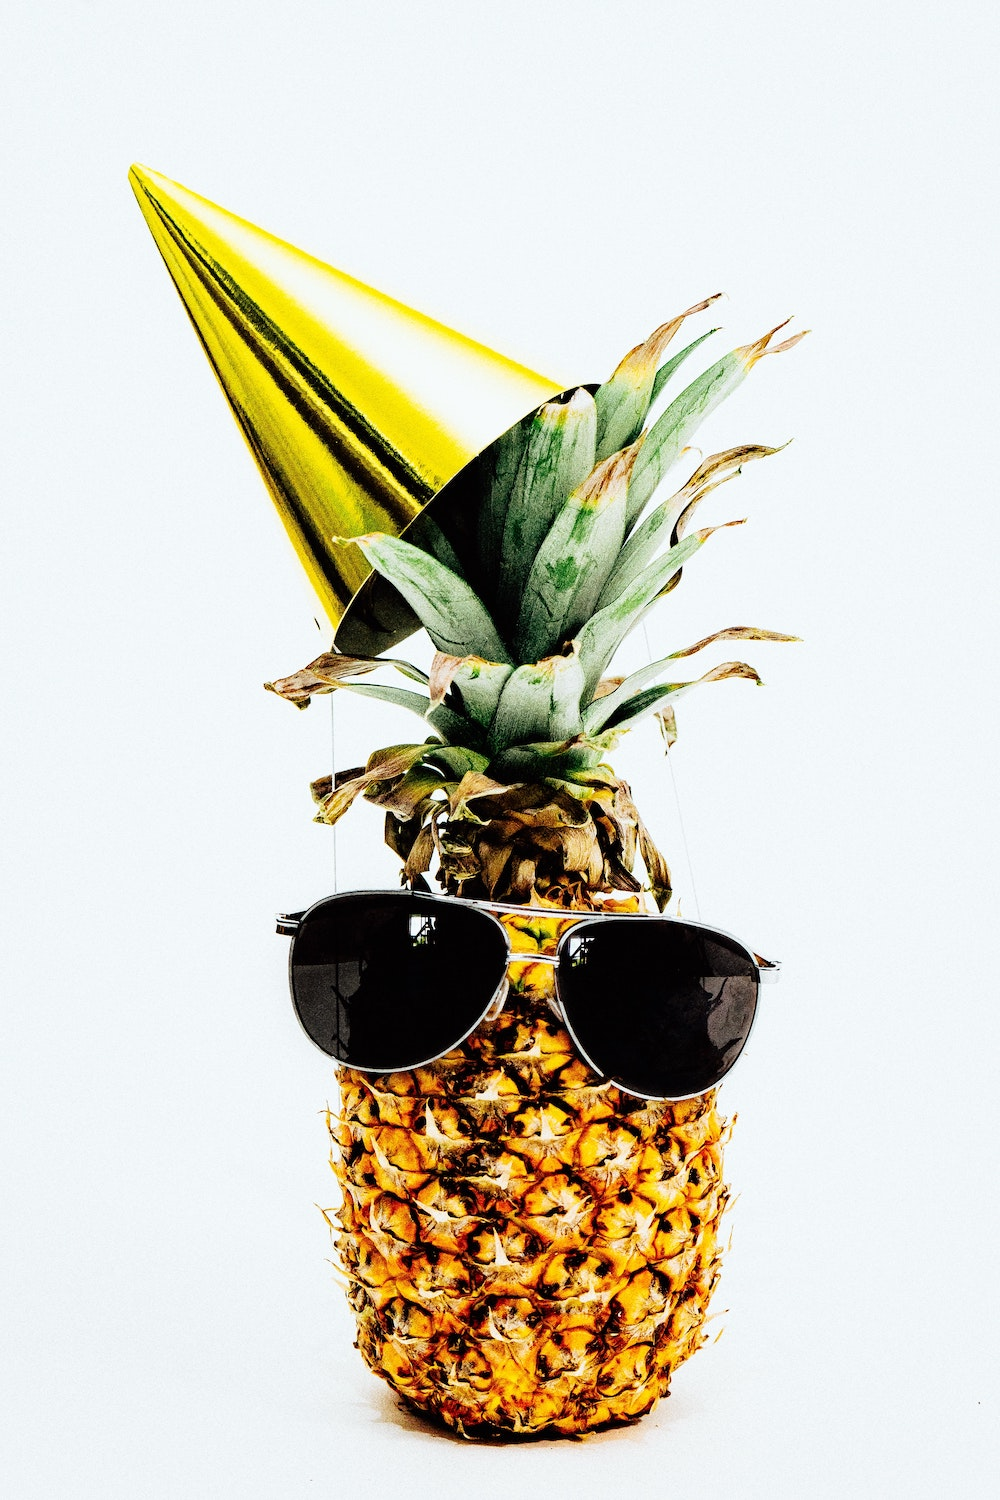 Pineapple with sunglasses and a party hat